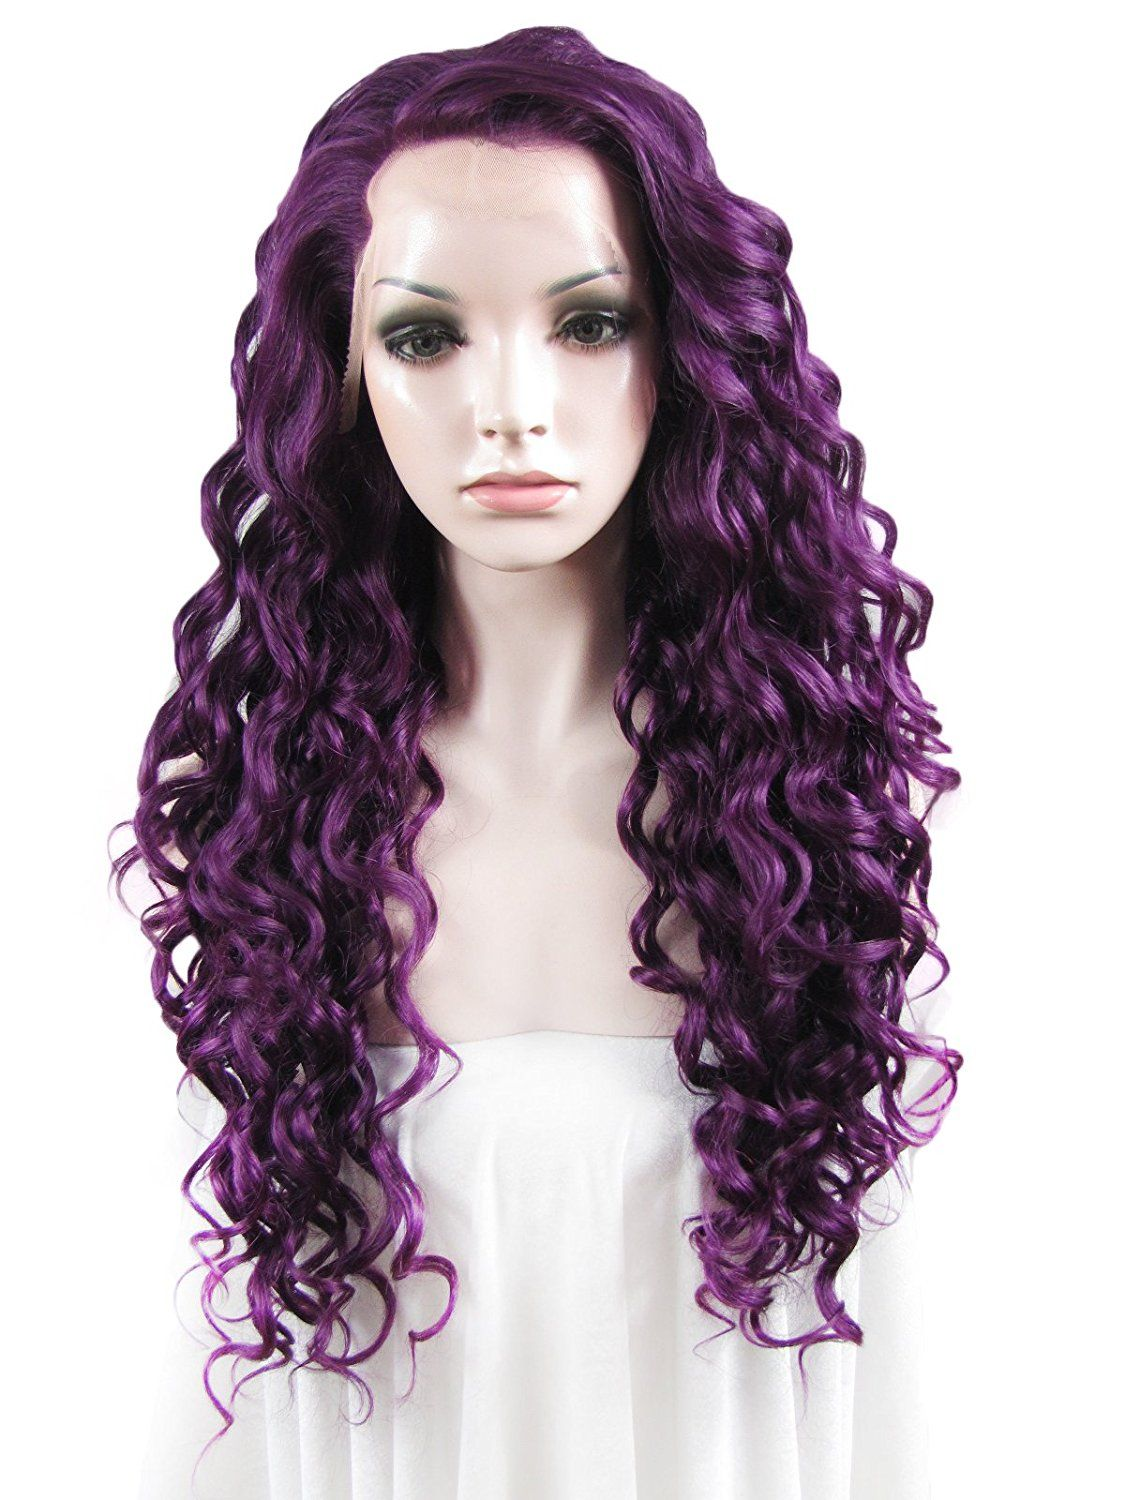 Imstyle Romantic Hairstyle Long Curly Wig Christmas Party